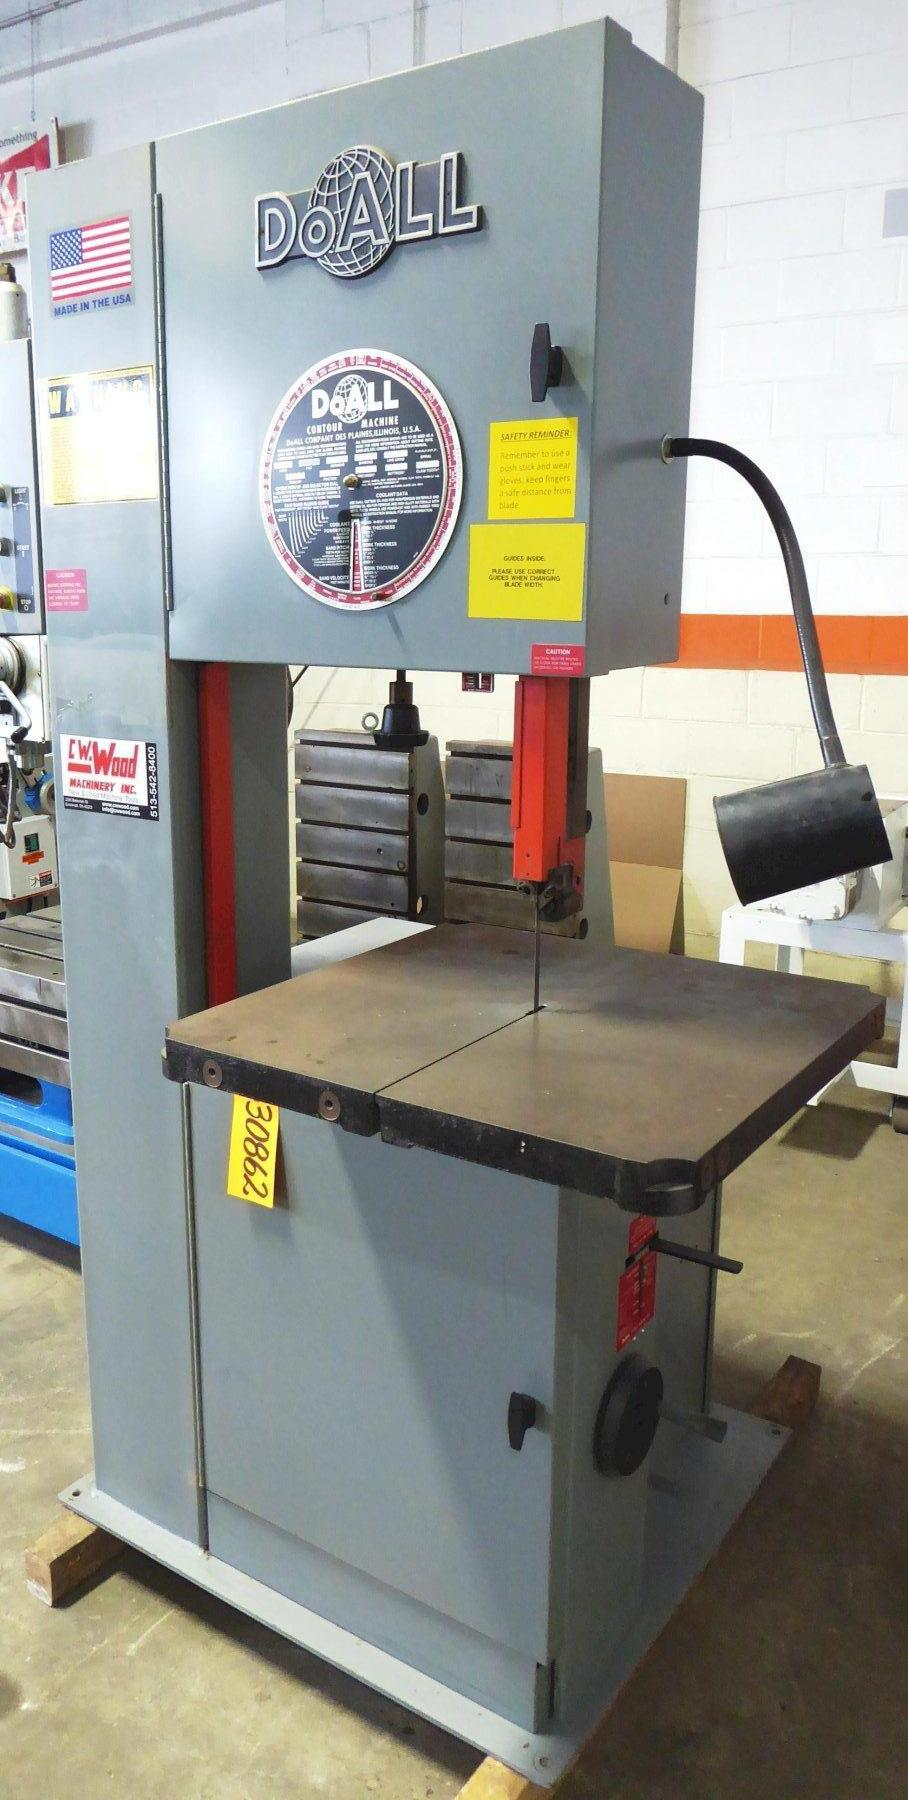 20″ DoAll Vertical Band Saw No. 2013-V, 13″ Under Guide, 55-2200 FPM, 26″ x 26″ Tbl., Nice